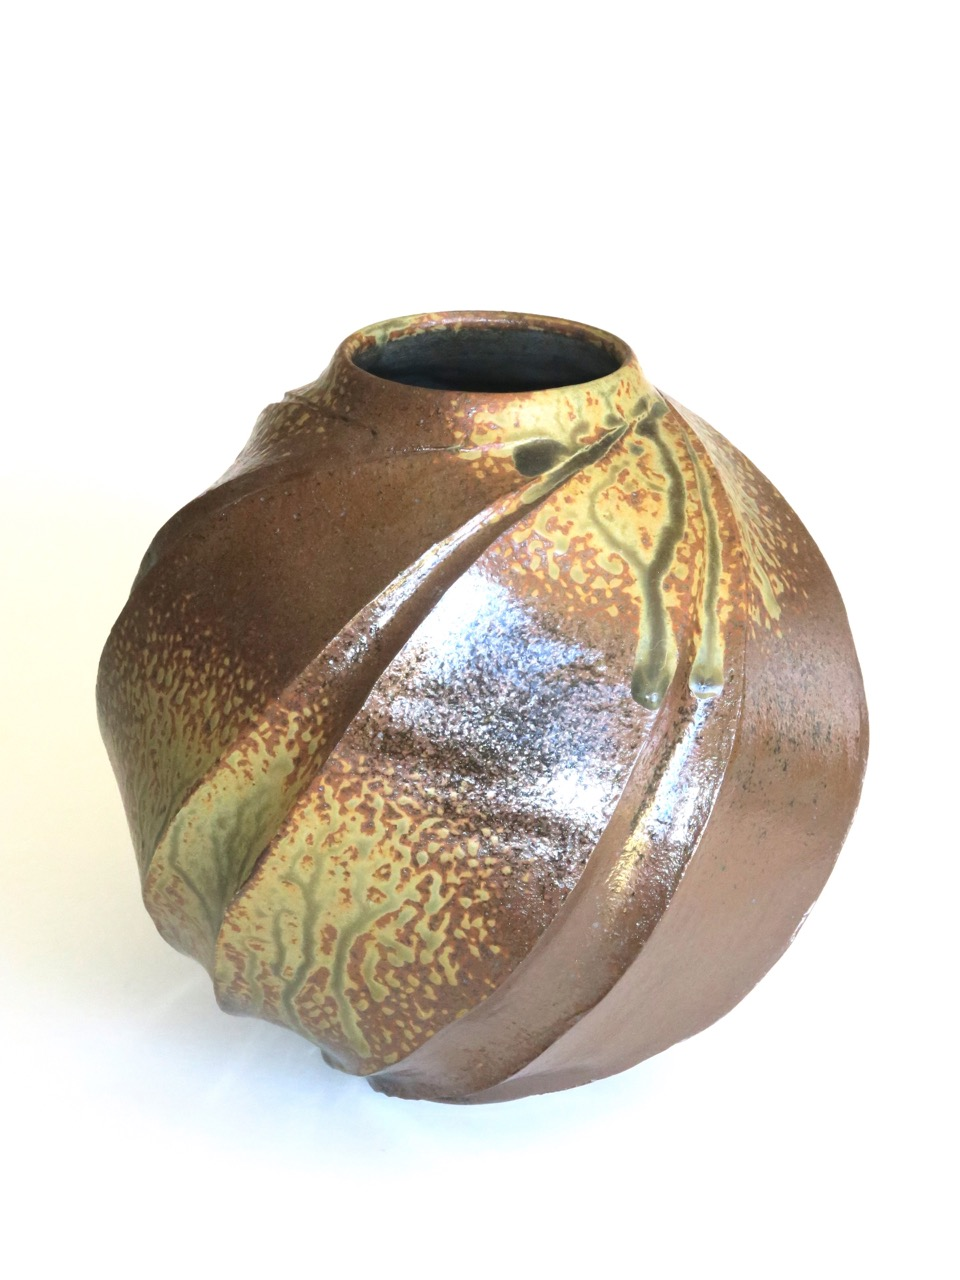 Terunobu Hirata,  Ho-No-O (Flame),  small, stoneware, ash glaze, H22.4cm, 2017 AVAILABLE